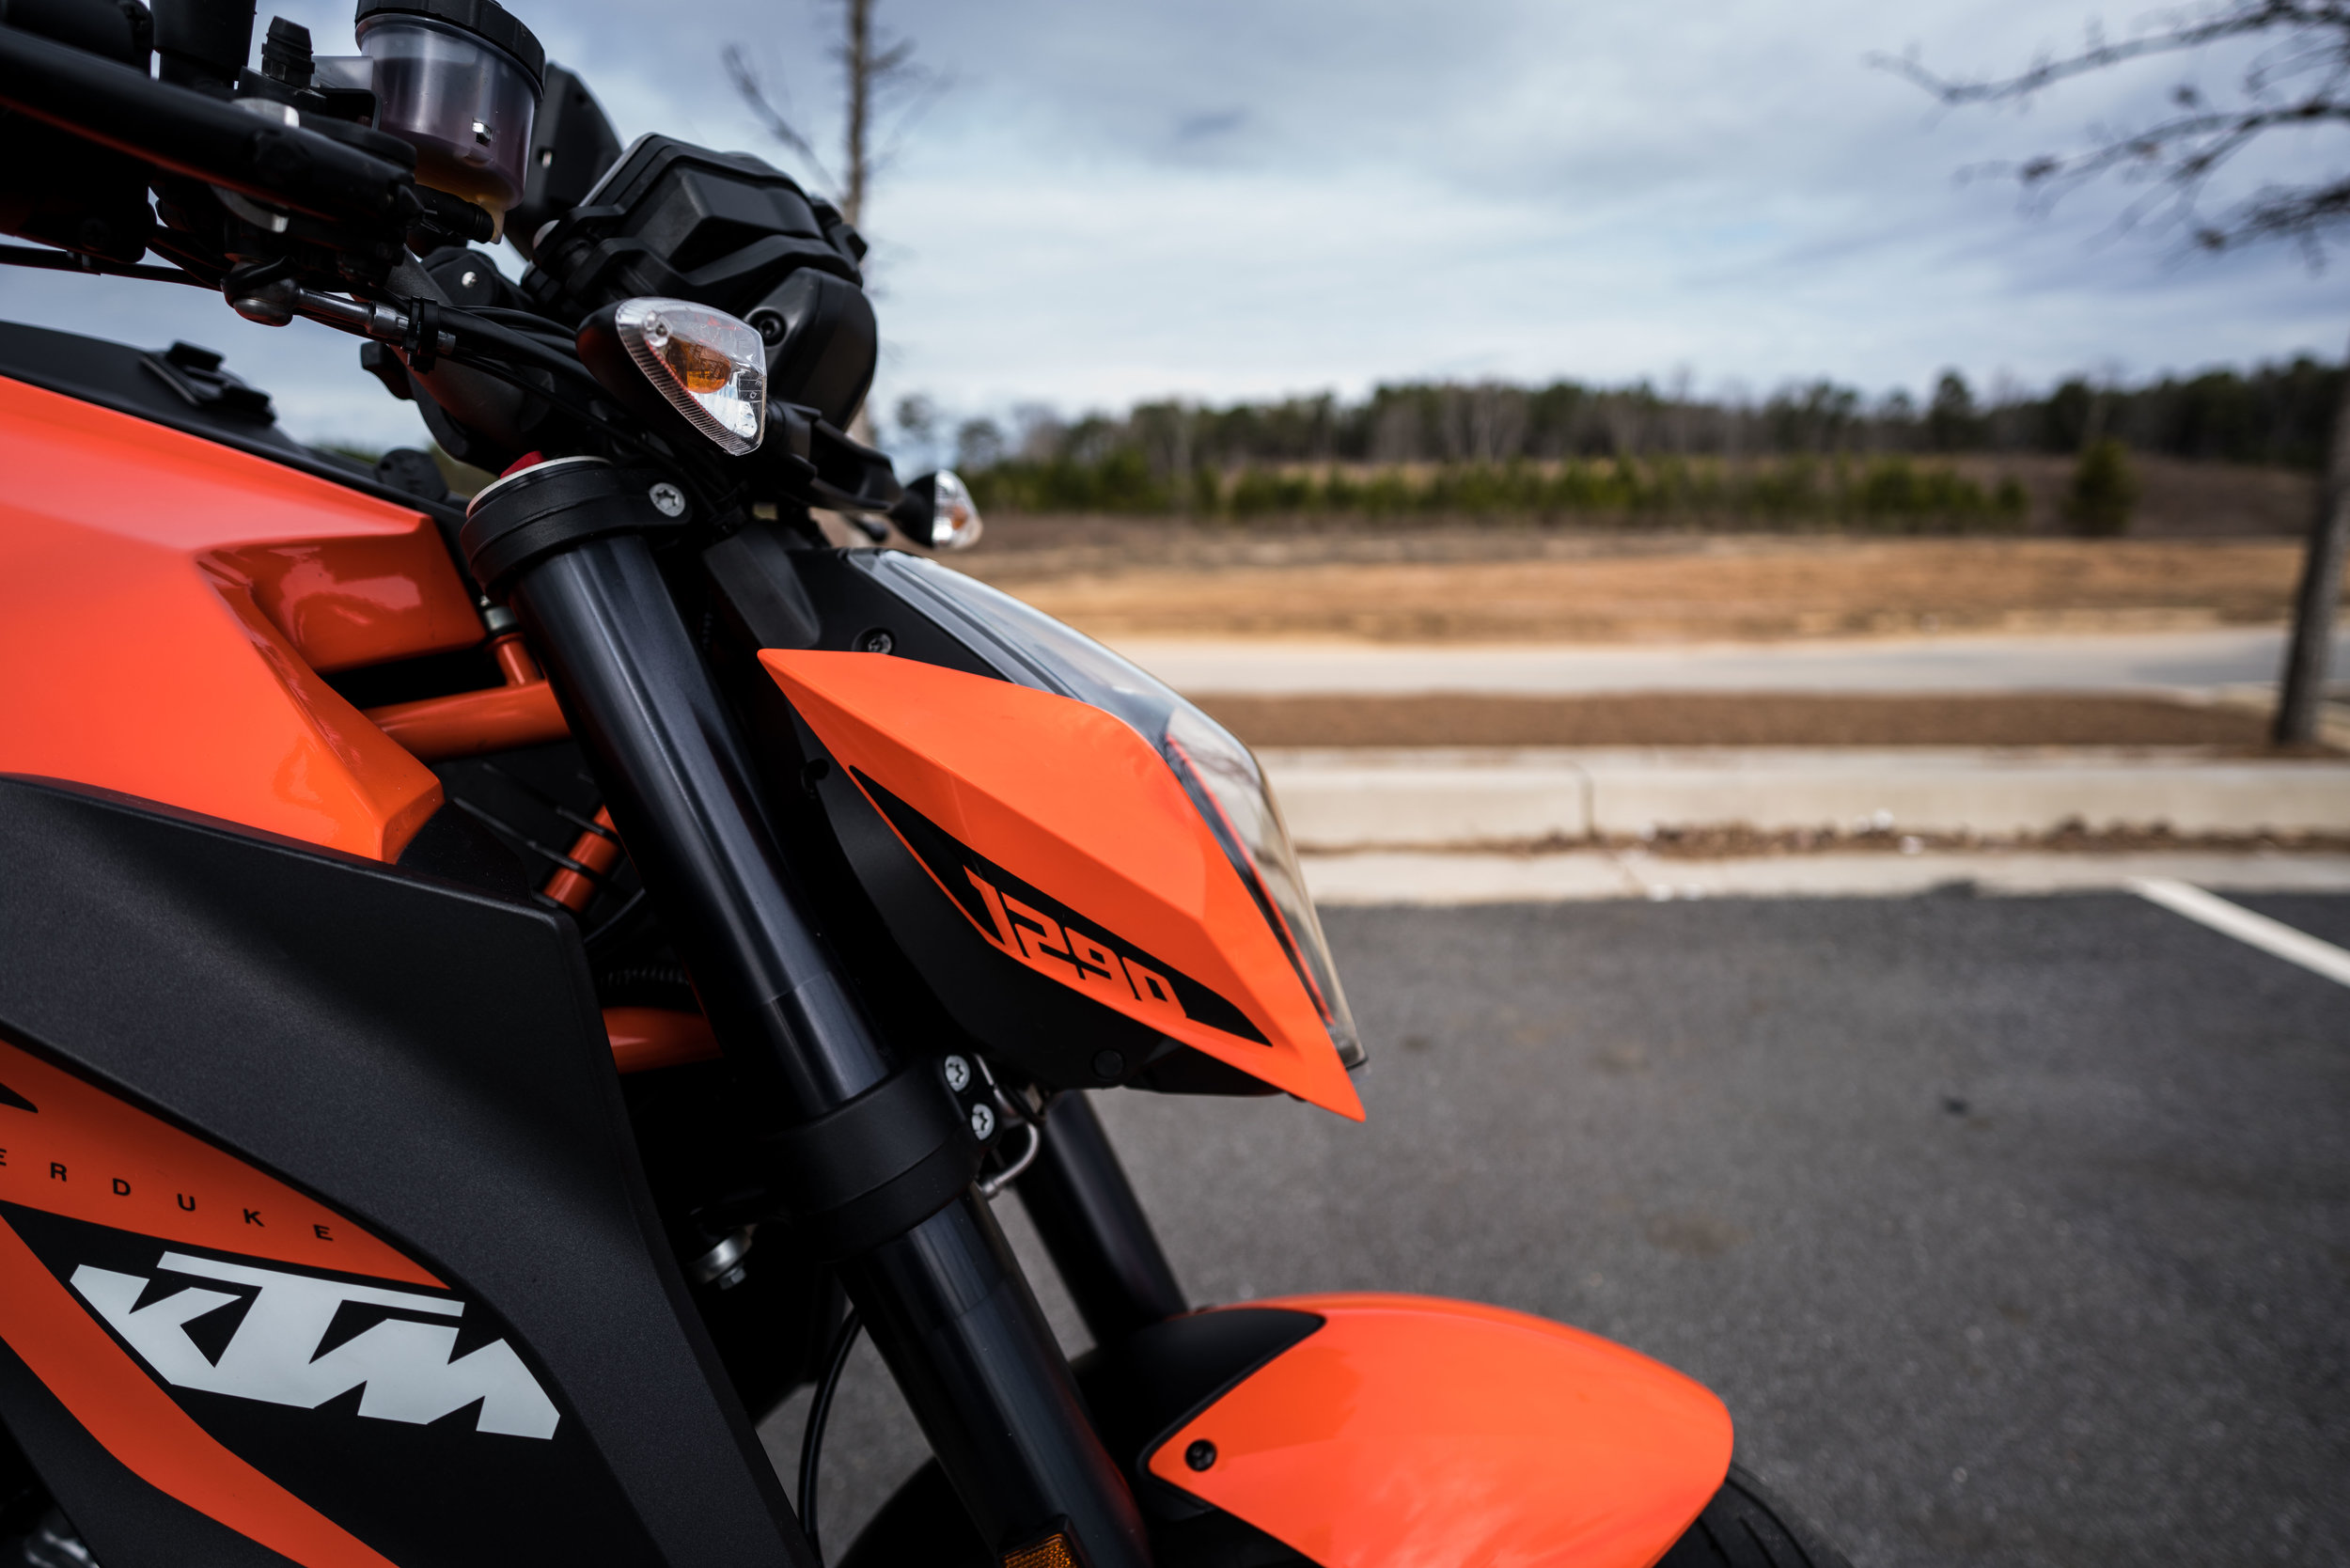 Superduke_FirstRide-6.jpg